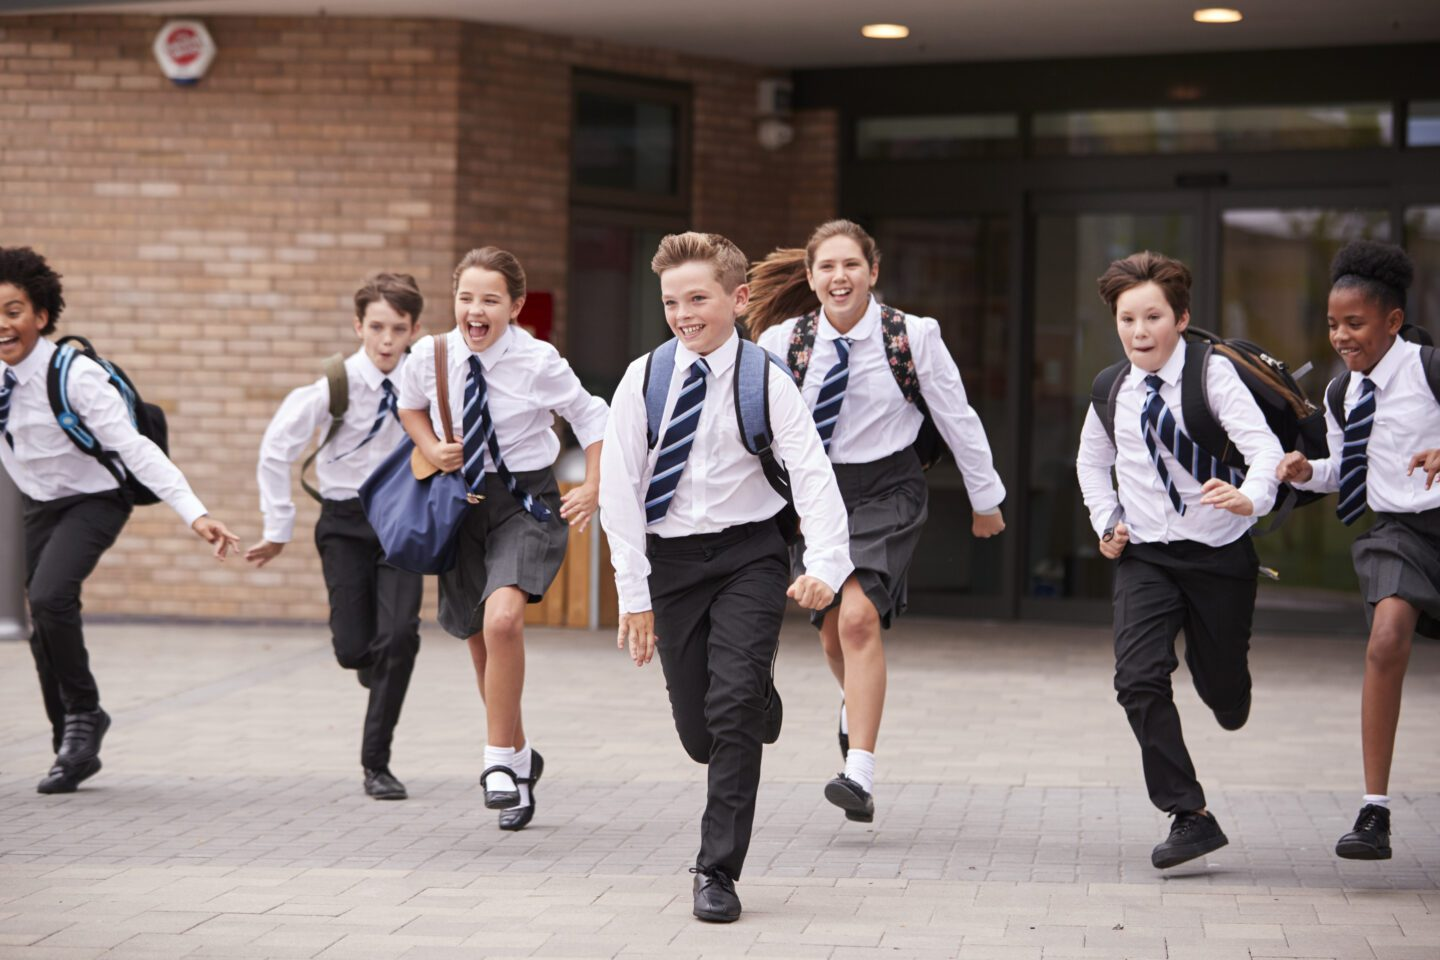 Group Of excited School Students Wearing Uniform Running Out Of School Buildings Towards Camera